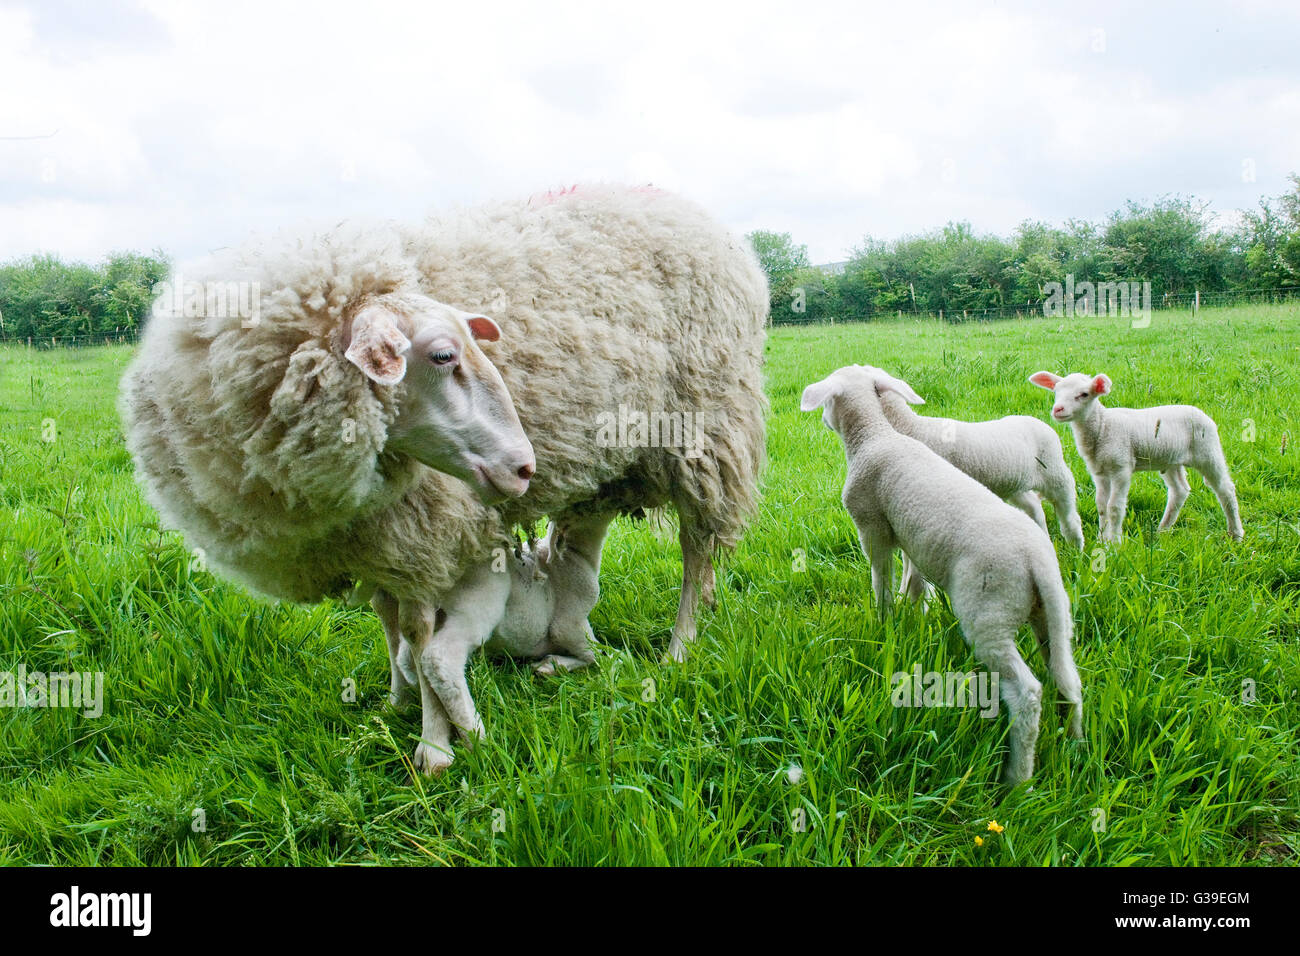 ewe and her four lambs - Stock Image